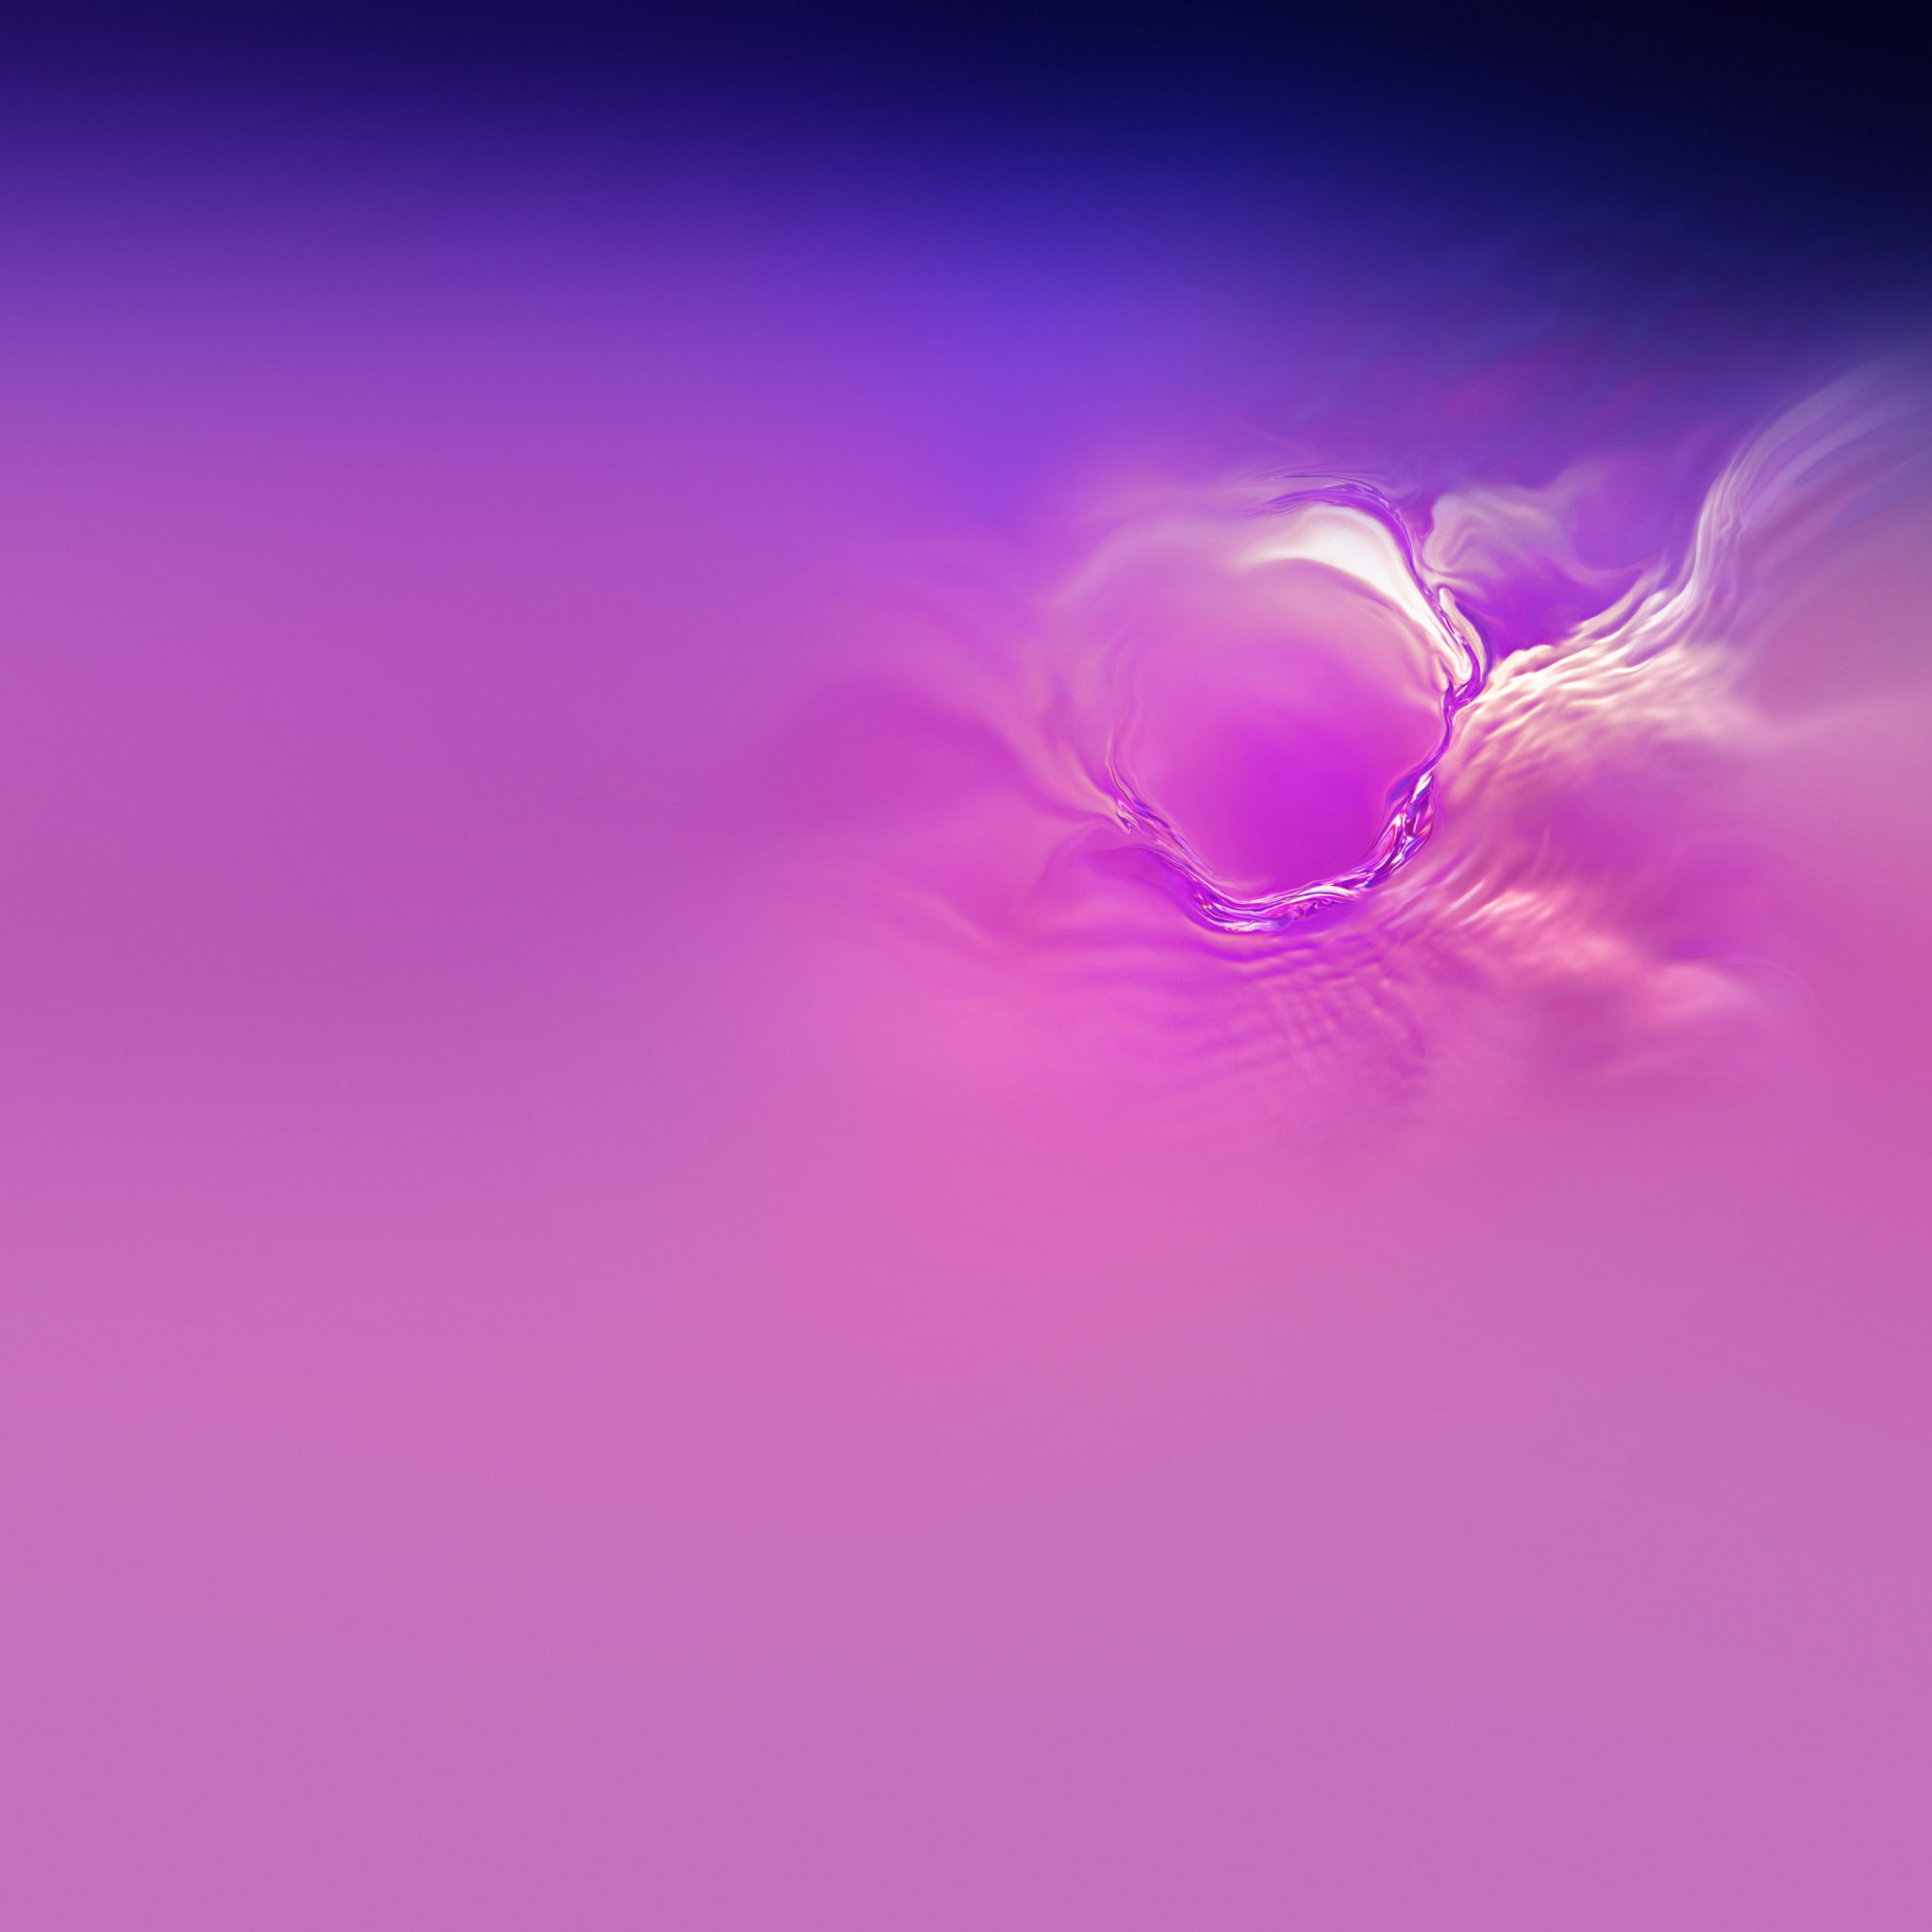 galaxy_s10_wall_purple_TechFoogle